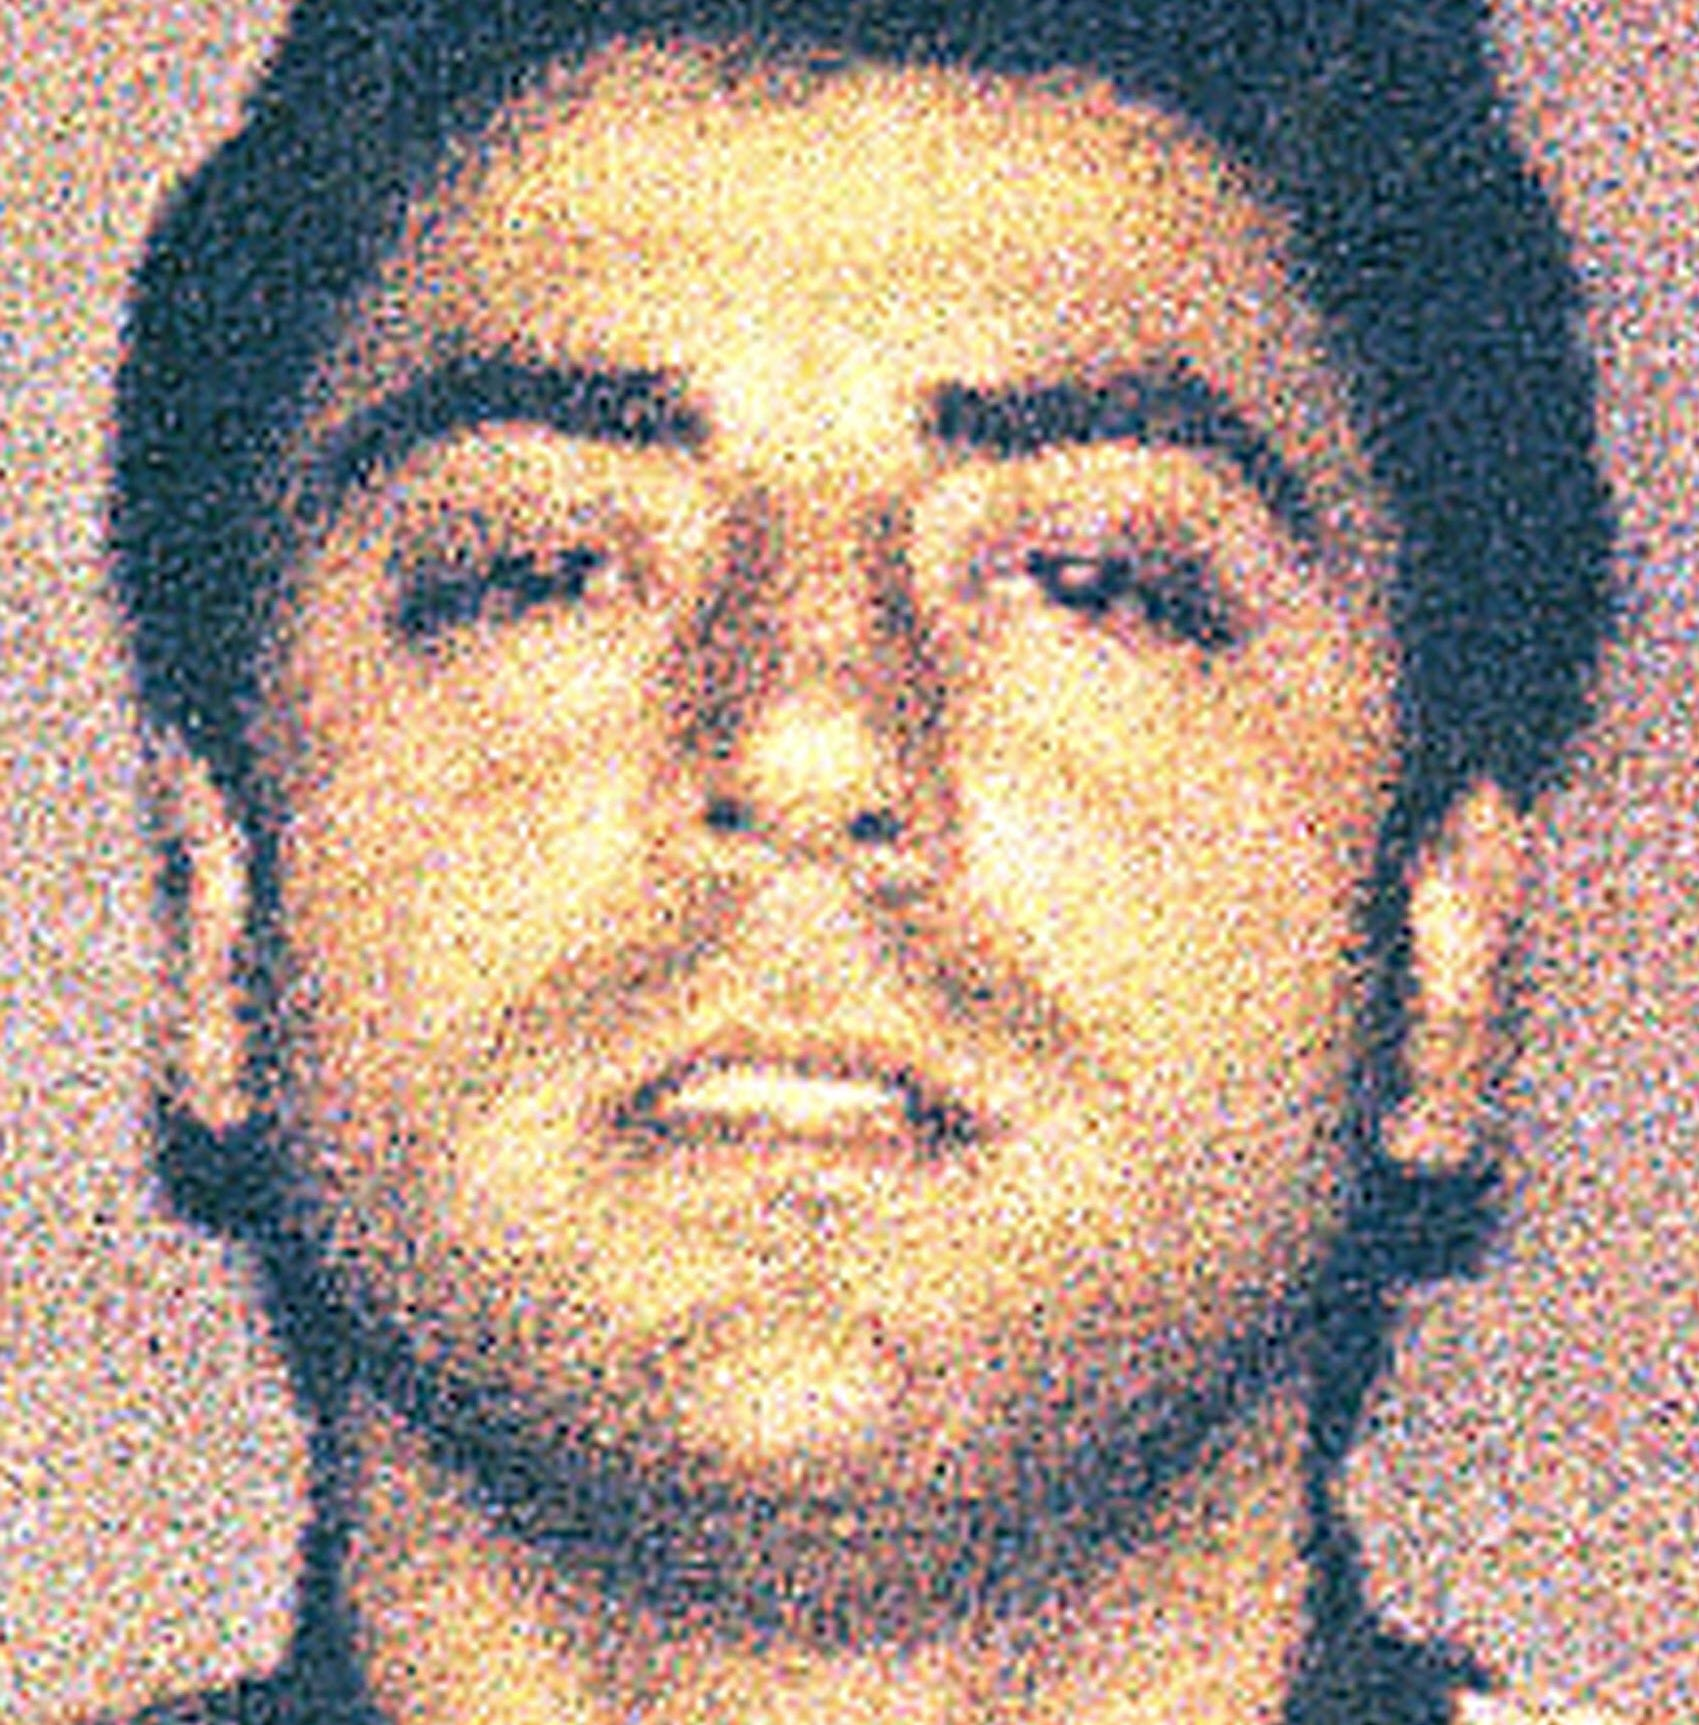 Alleged Gambino crime boss's slaying is throwback to bygone era, experts say